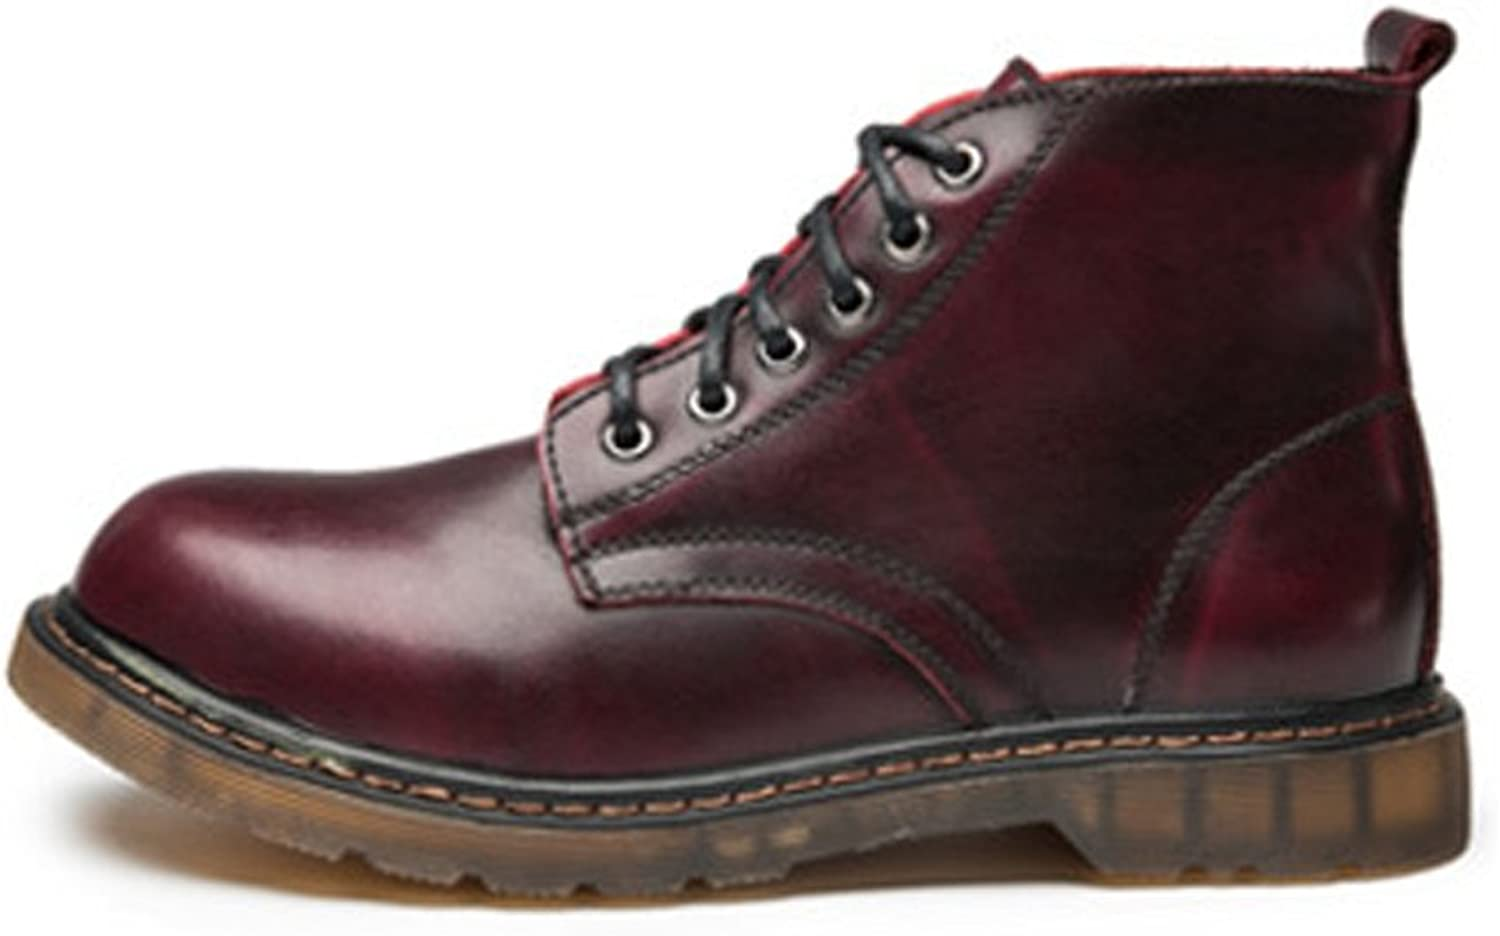 MUMUWU Men's shoes Classic Leather Lace Up Oxfords High Top Ankle Boots for Gentlemen Winter